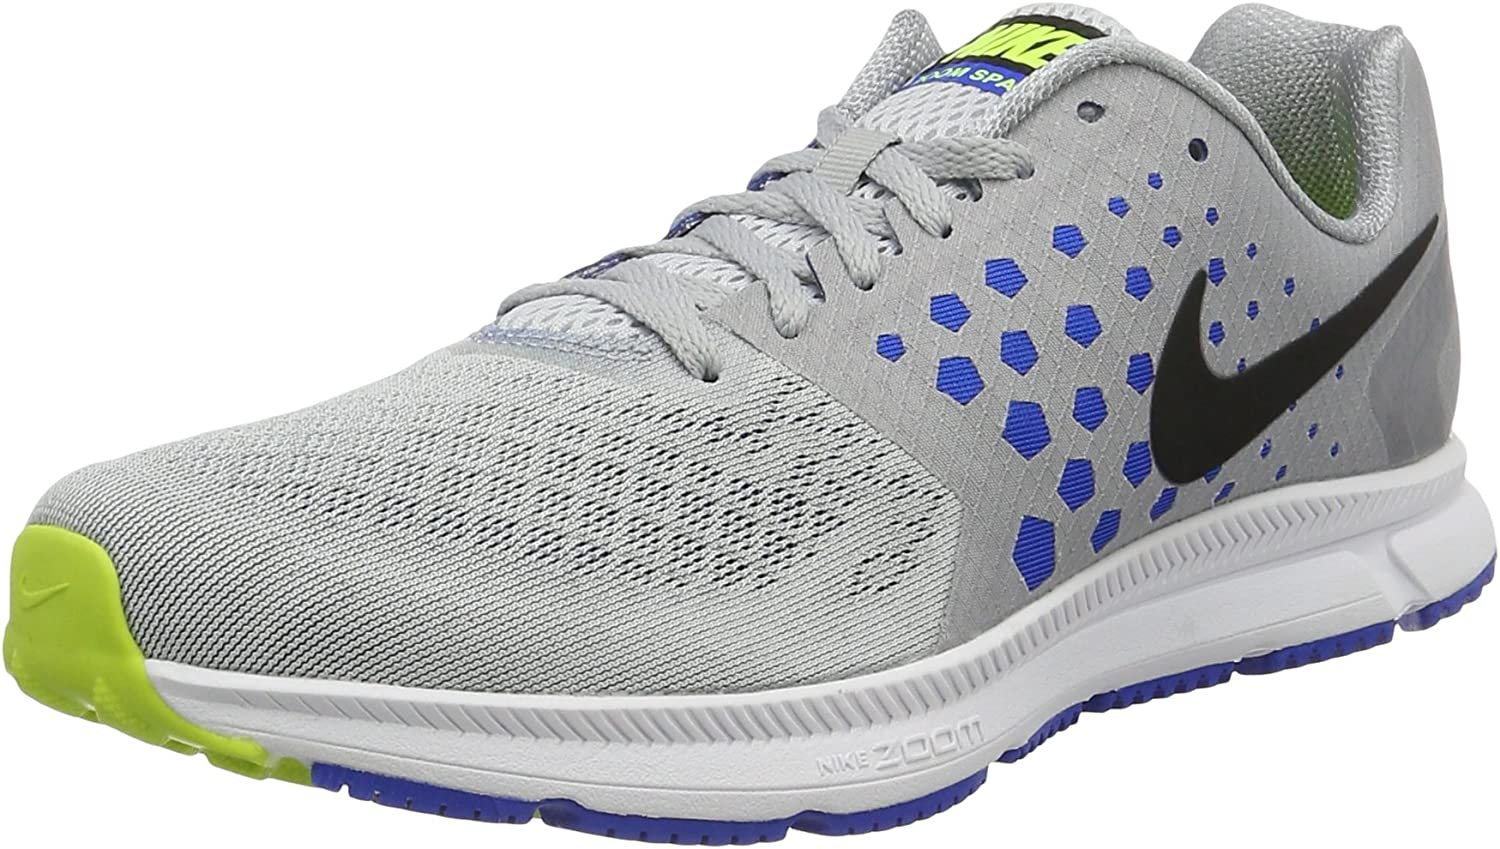 Nike Men's Zoom Span Running shoes